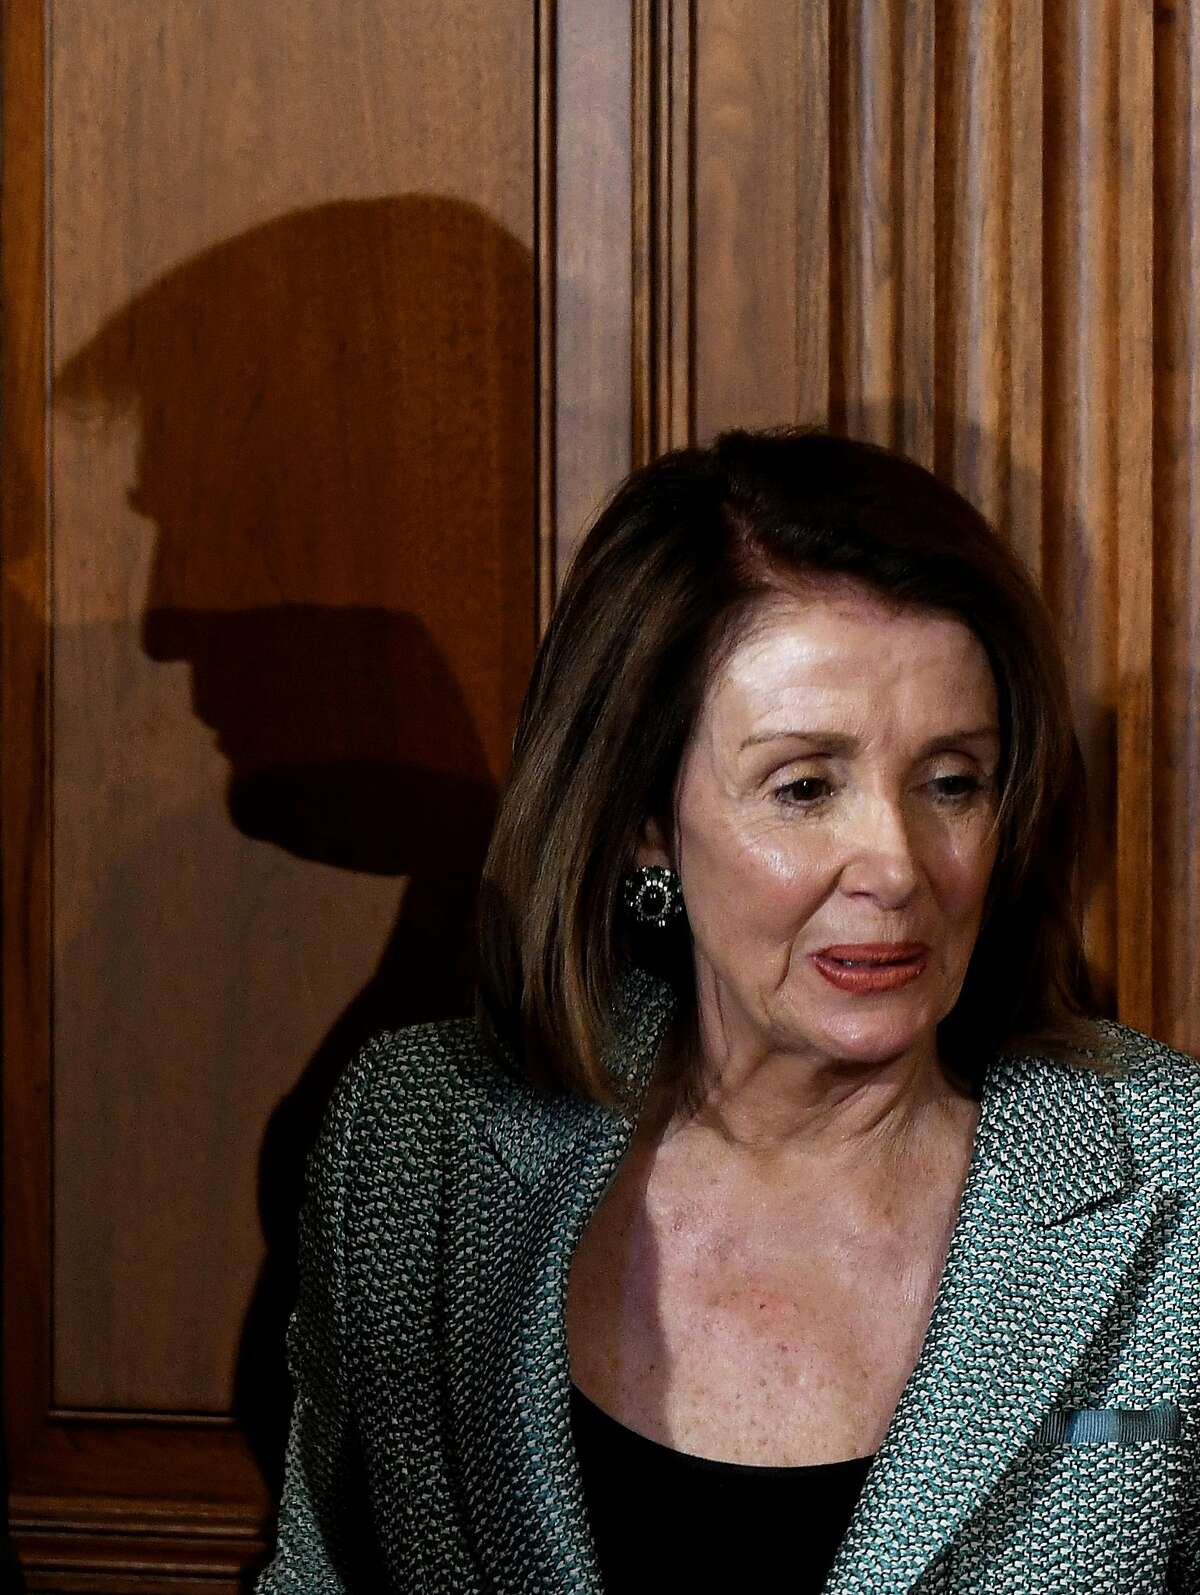 WASHINGTON, DC - MARCH 14: (AFP OUT) U.S. President Donald Trump's shadow is seen behind House Speaker Nancy Pelosi (D-CA) during the Friends of Ireland Luncheon in honor of Ireland Prime Minister Leo Varadkar at the U.S. Capitol on March 14, 2019 in Was